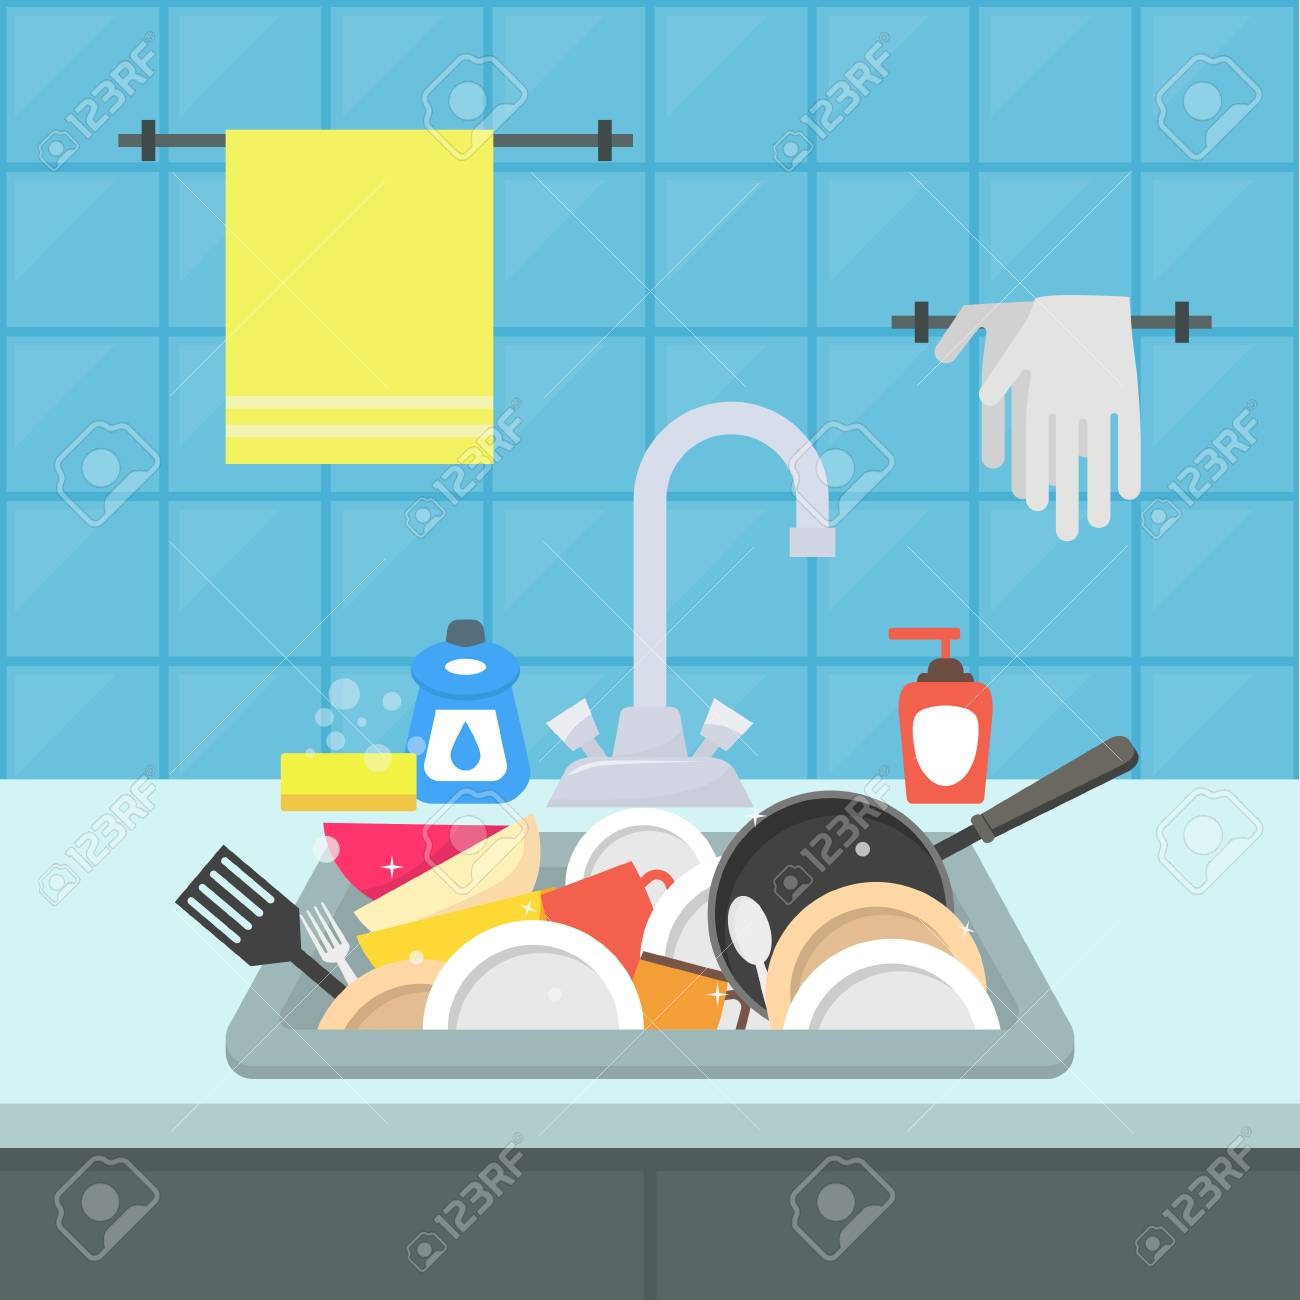 Cartoon Kitchen Sink With Different Kitchenware Vector Royalty Free Cliparts Vectors And Stock Illustration Image 117253979